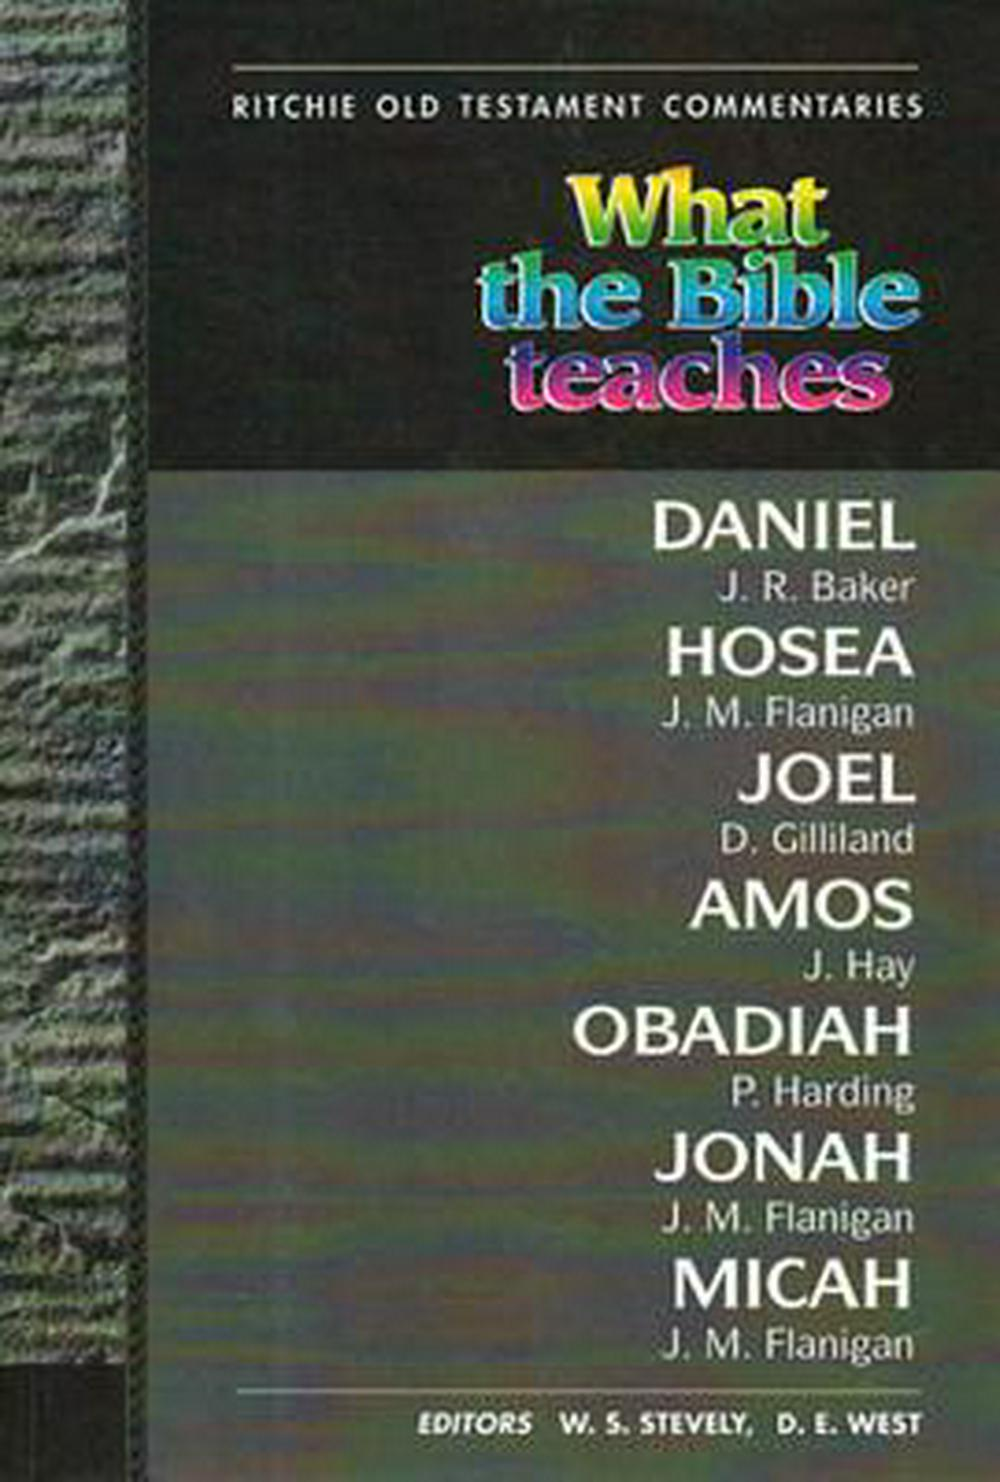 Wtbt Daniel Hosea Joel Amos Obadiah Jonah (What the Bible Teaches)